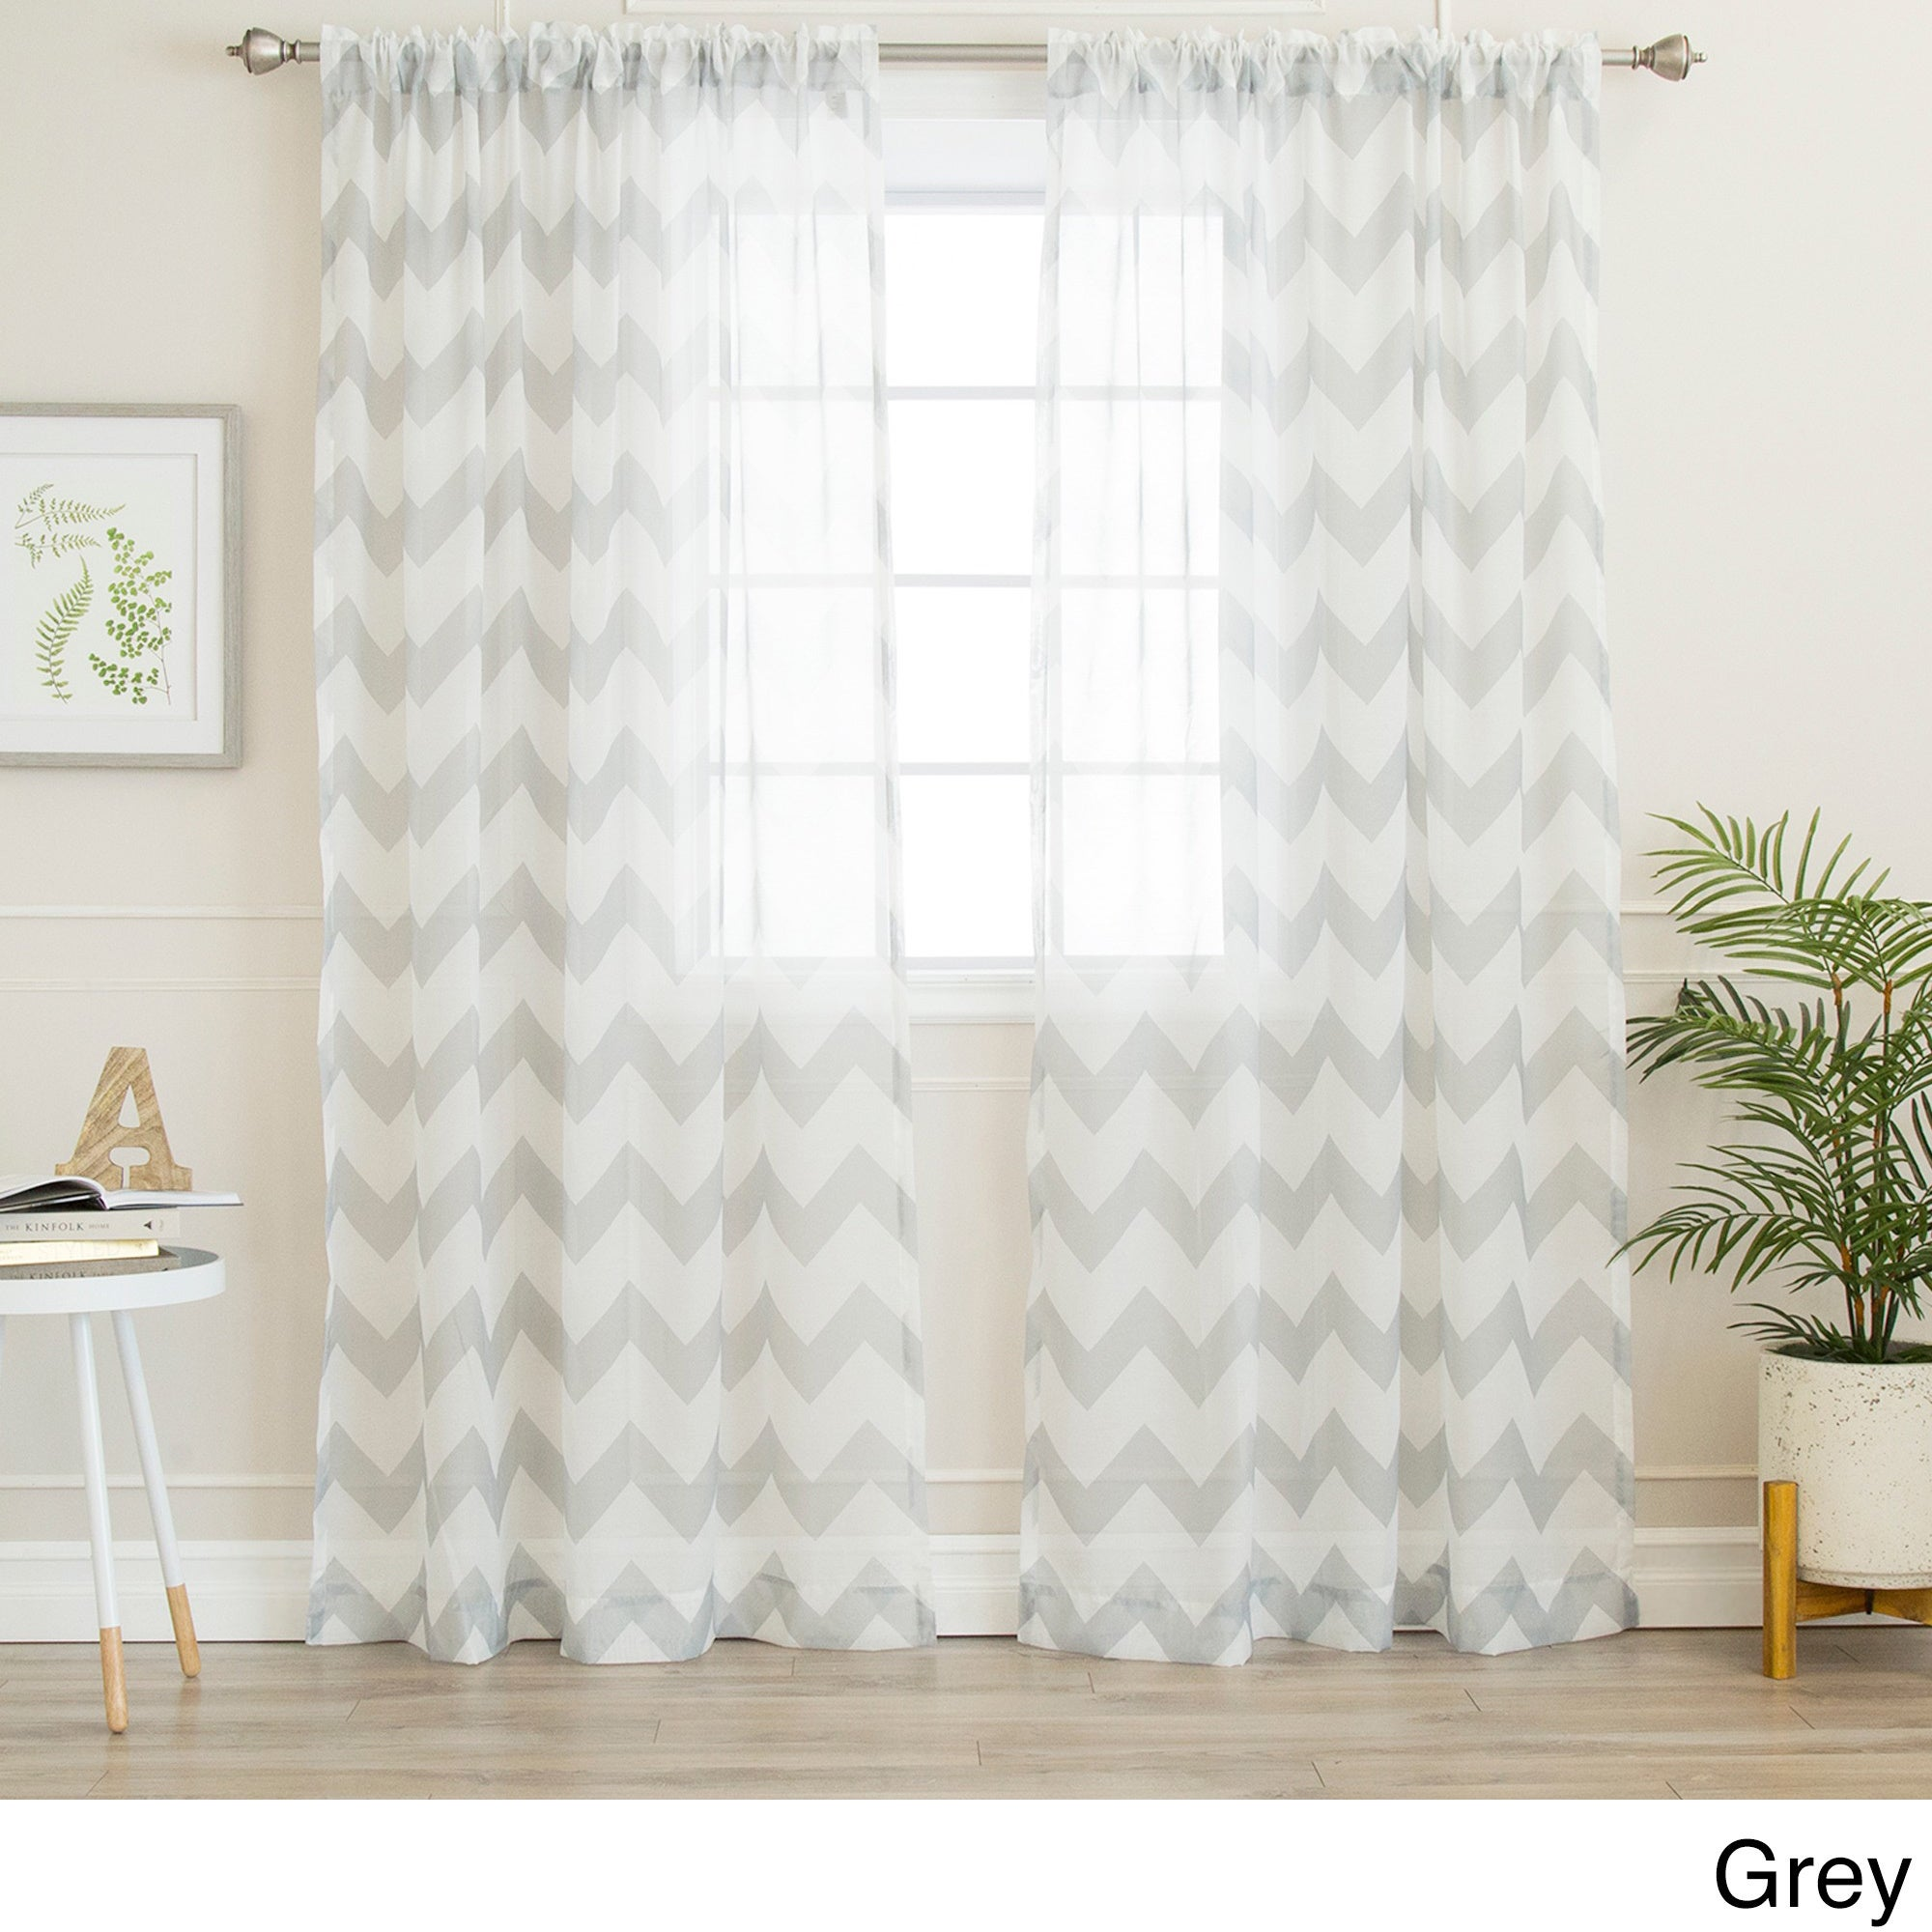 window treatment decorating pair ideas inches basics inch curtains rod arched gardens curtain satin wheat panel antique homes treatments better pinch palace polyester pleat